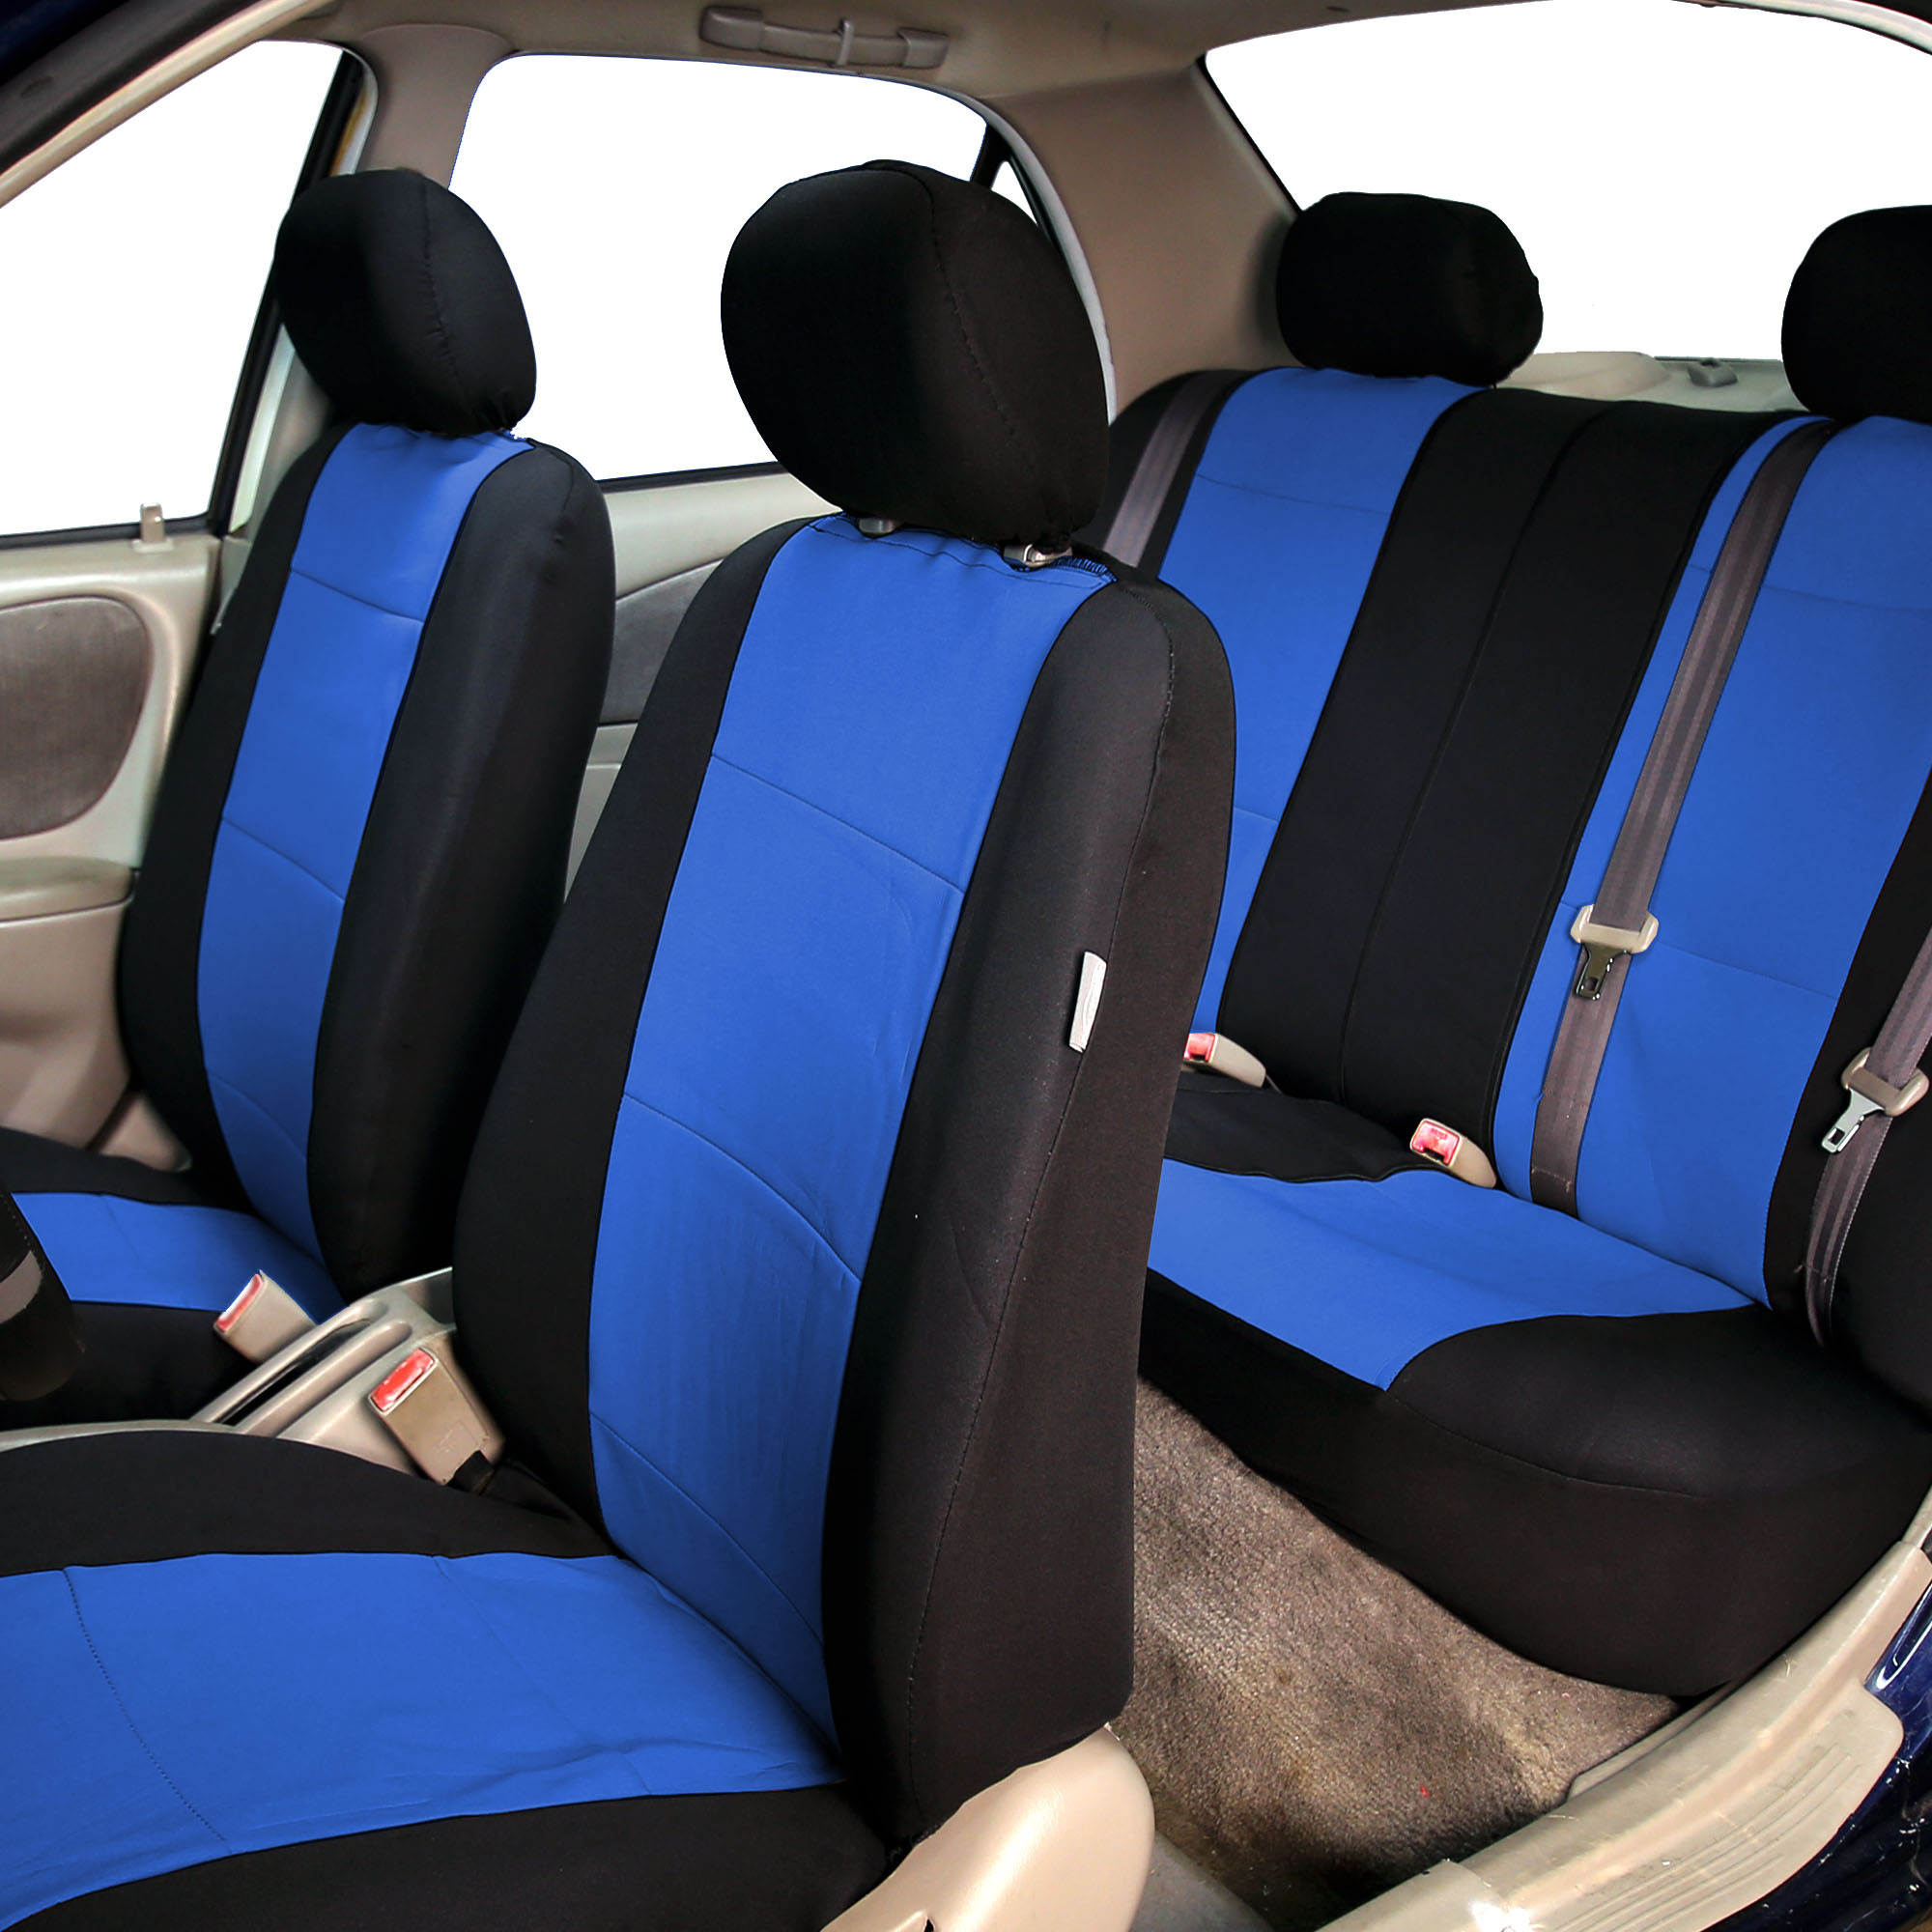 Car-Seat-Cover-Neoprene-Waterproof-Pet-Proof-Full-Set-Cover-With-Dash-Pad thumbnail 28